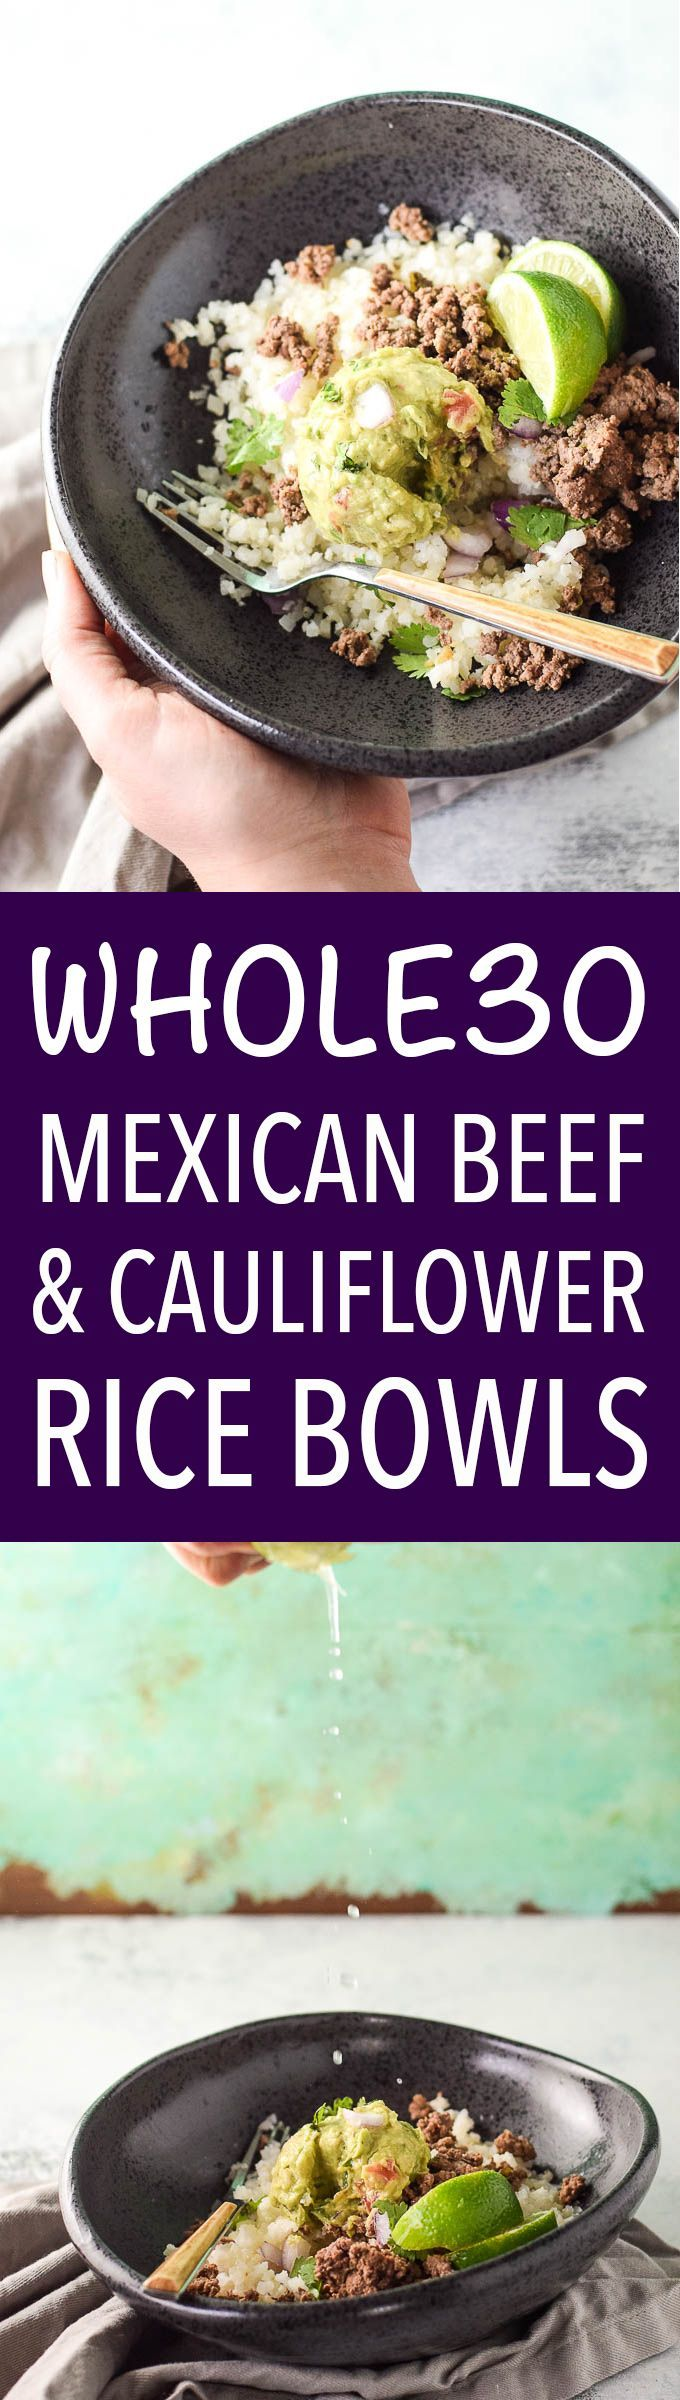 Paleo & Whole30 Mexican ground beef, cauliflower rice and homemade guacamole! Add your favorite taco toppings to customize your cauli-rice bowls.